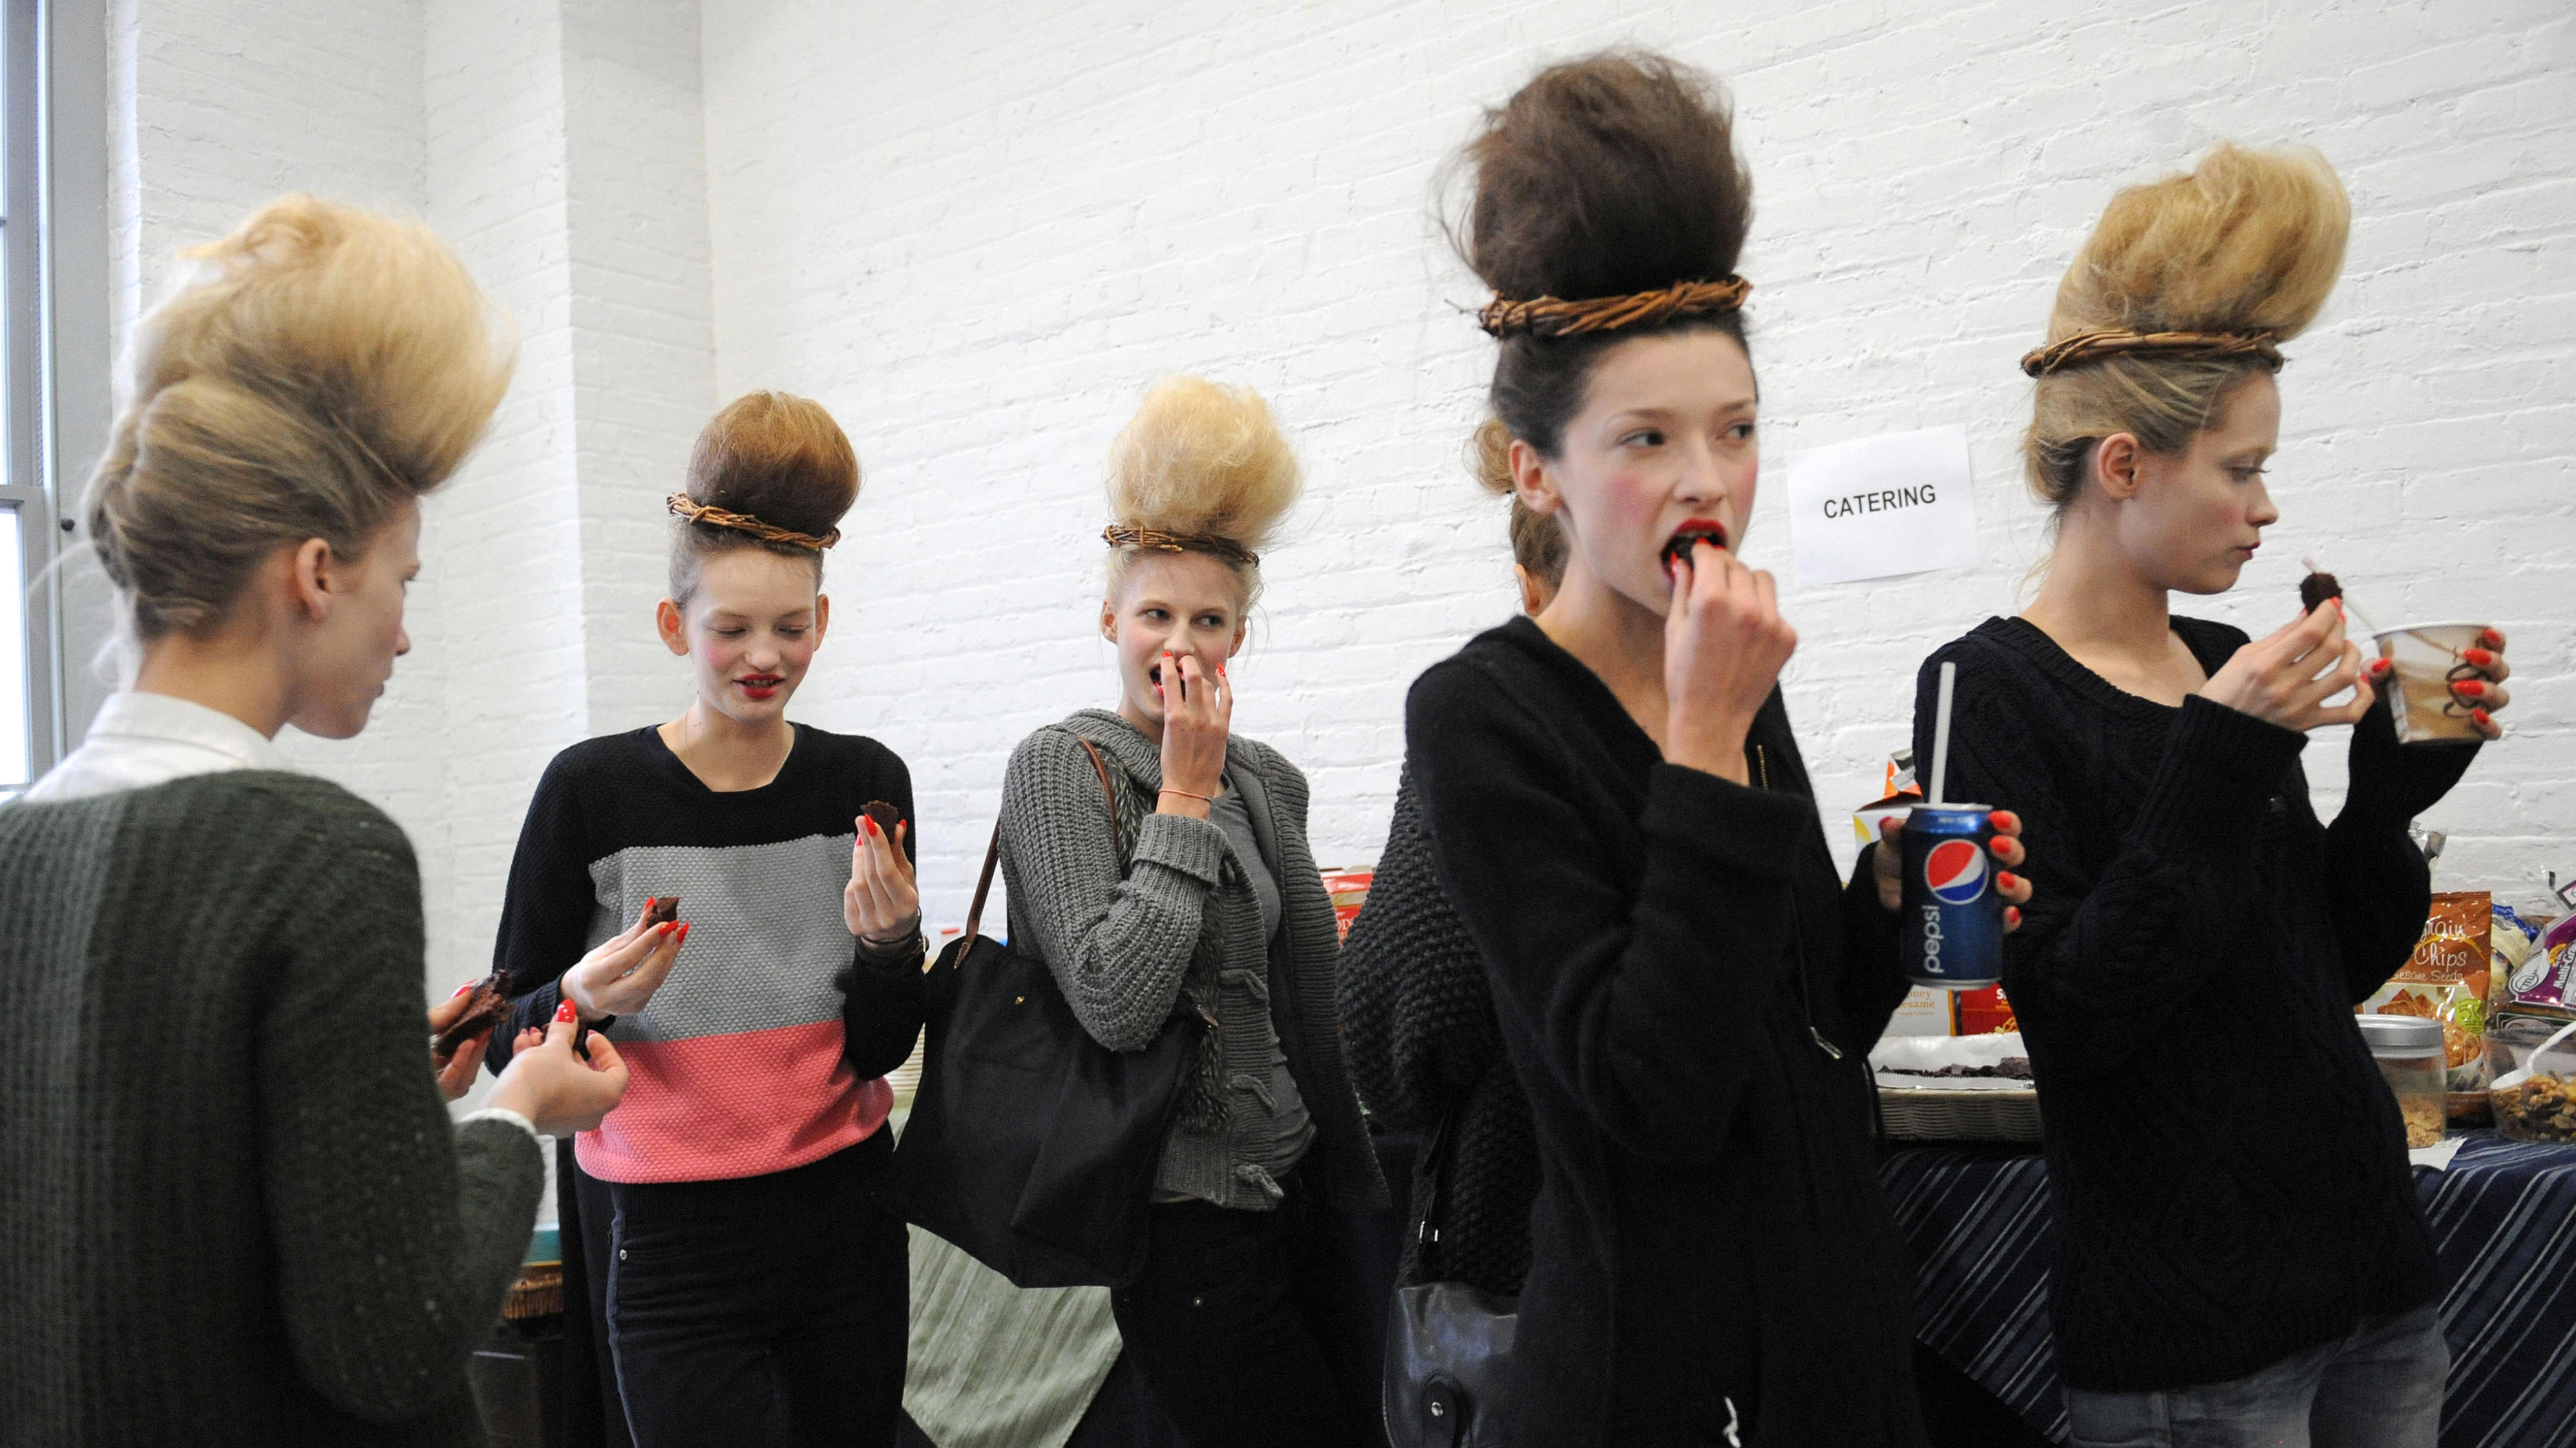 Models take a break to eat backstage before the showing of the Thom Browne Fall 2013 collection during Fashion Week, Monday, Feb. 11, 2013, in New York. (AP Photo/Louis Lanzano)